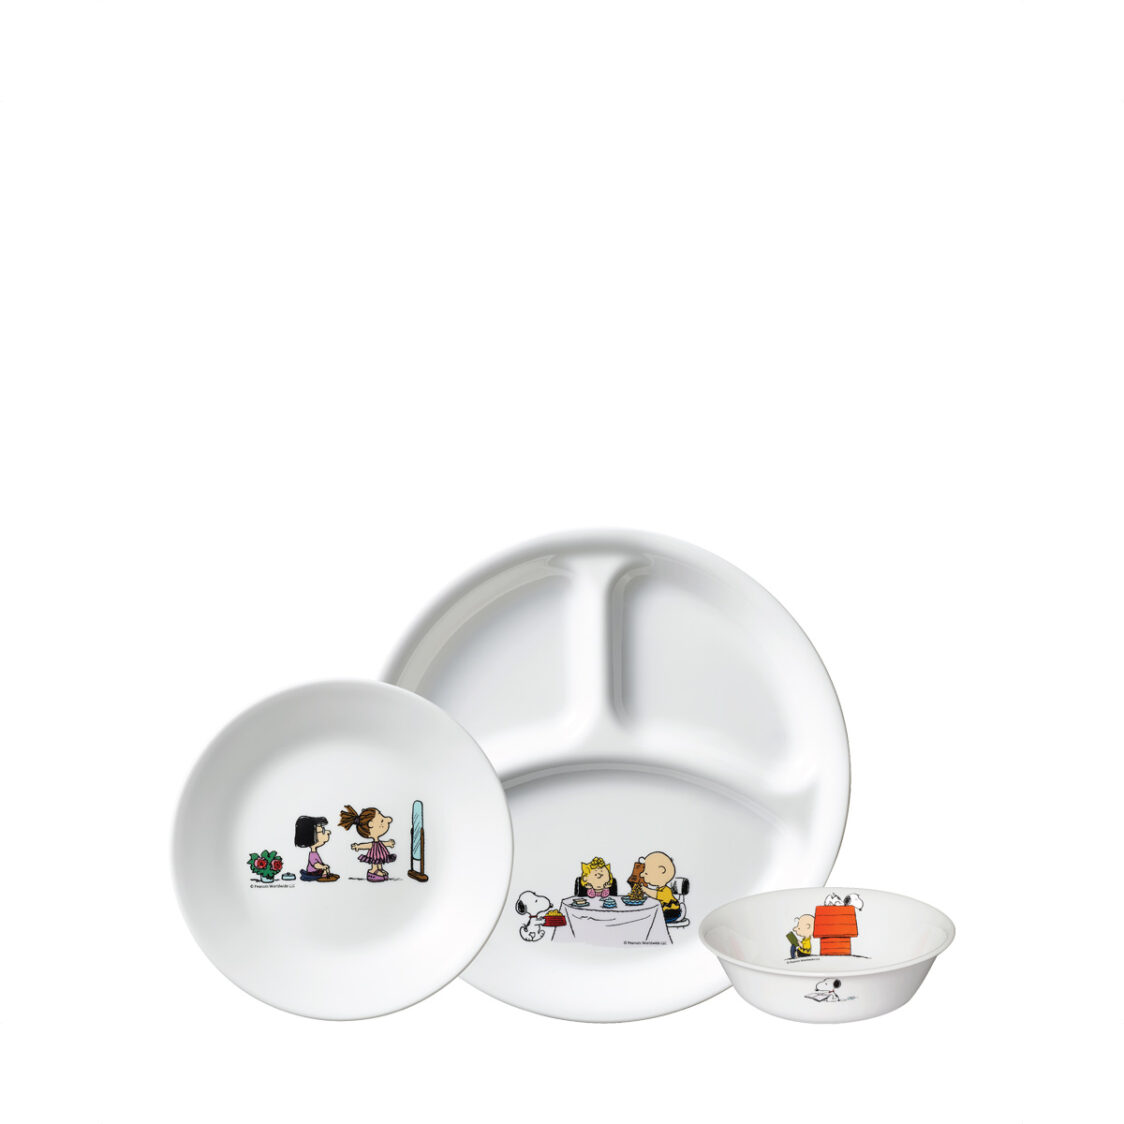 Corelle 3pc Set A Bread  Butter Plate 26cm Divided Plate  500ml Cereal Bowl Design Snoopy Colourful